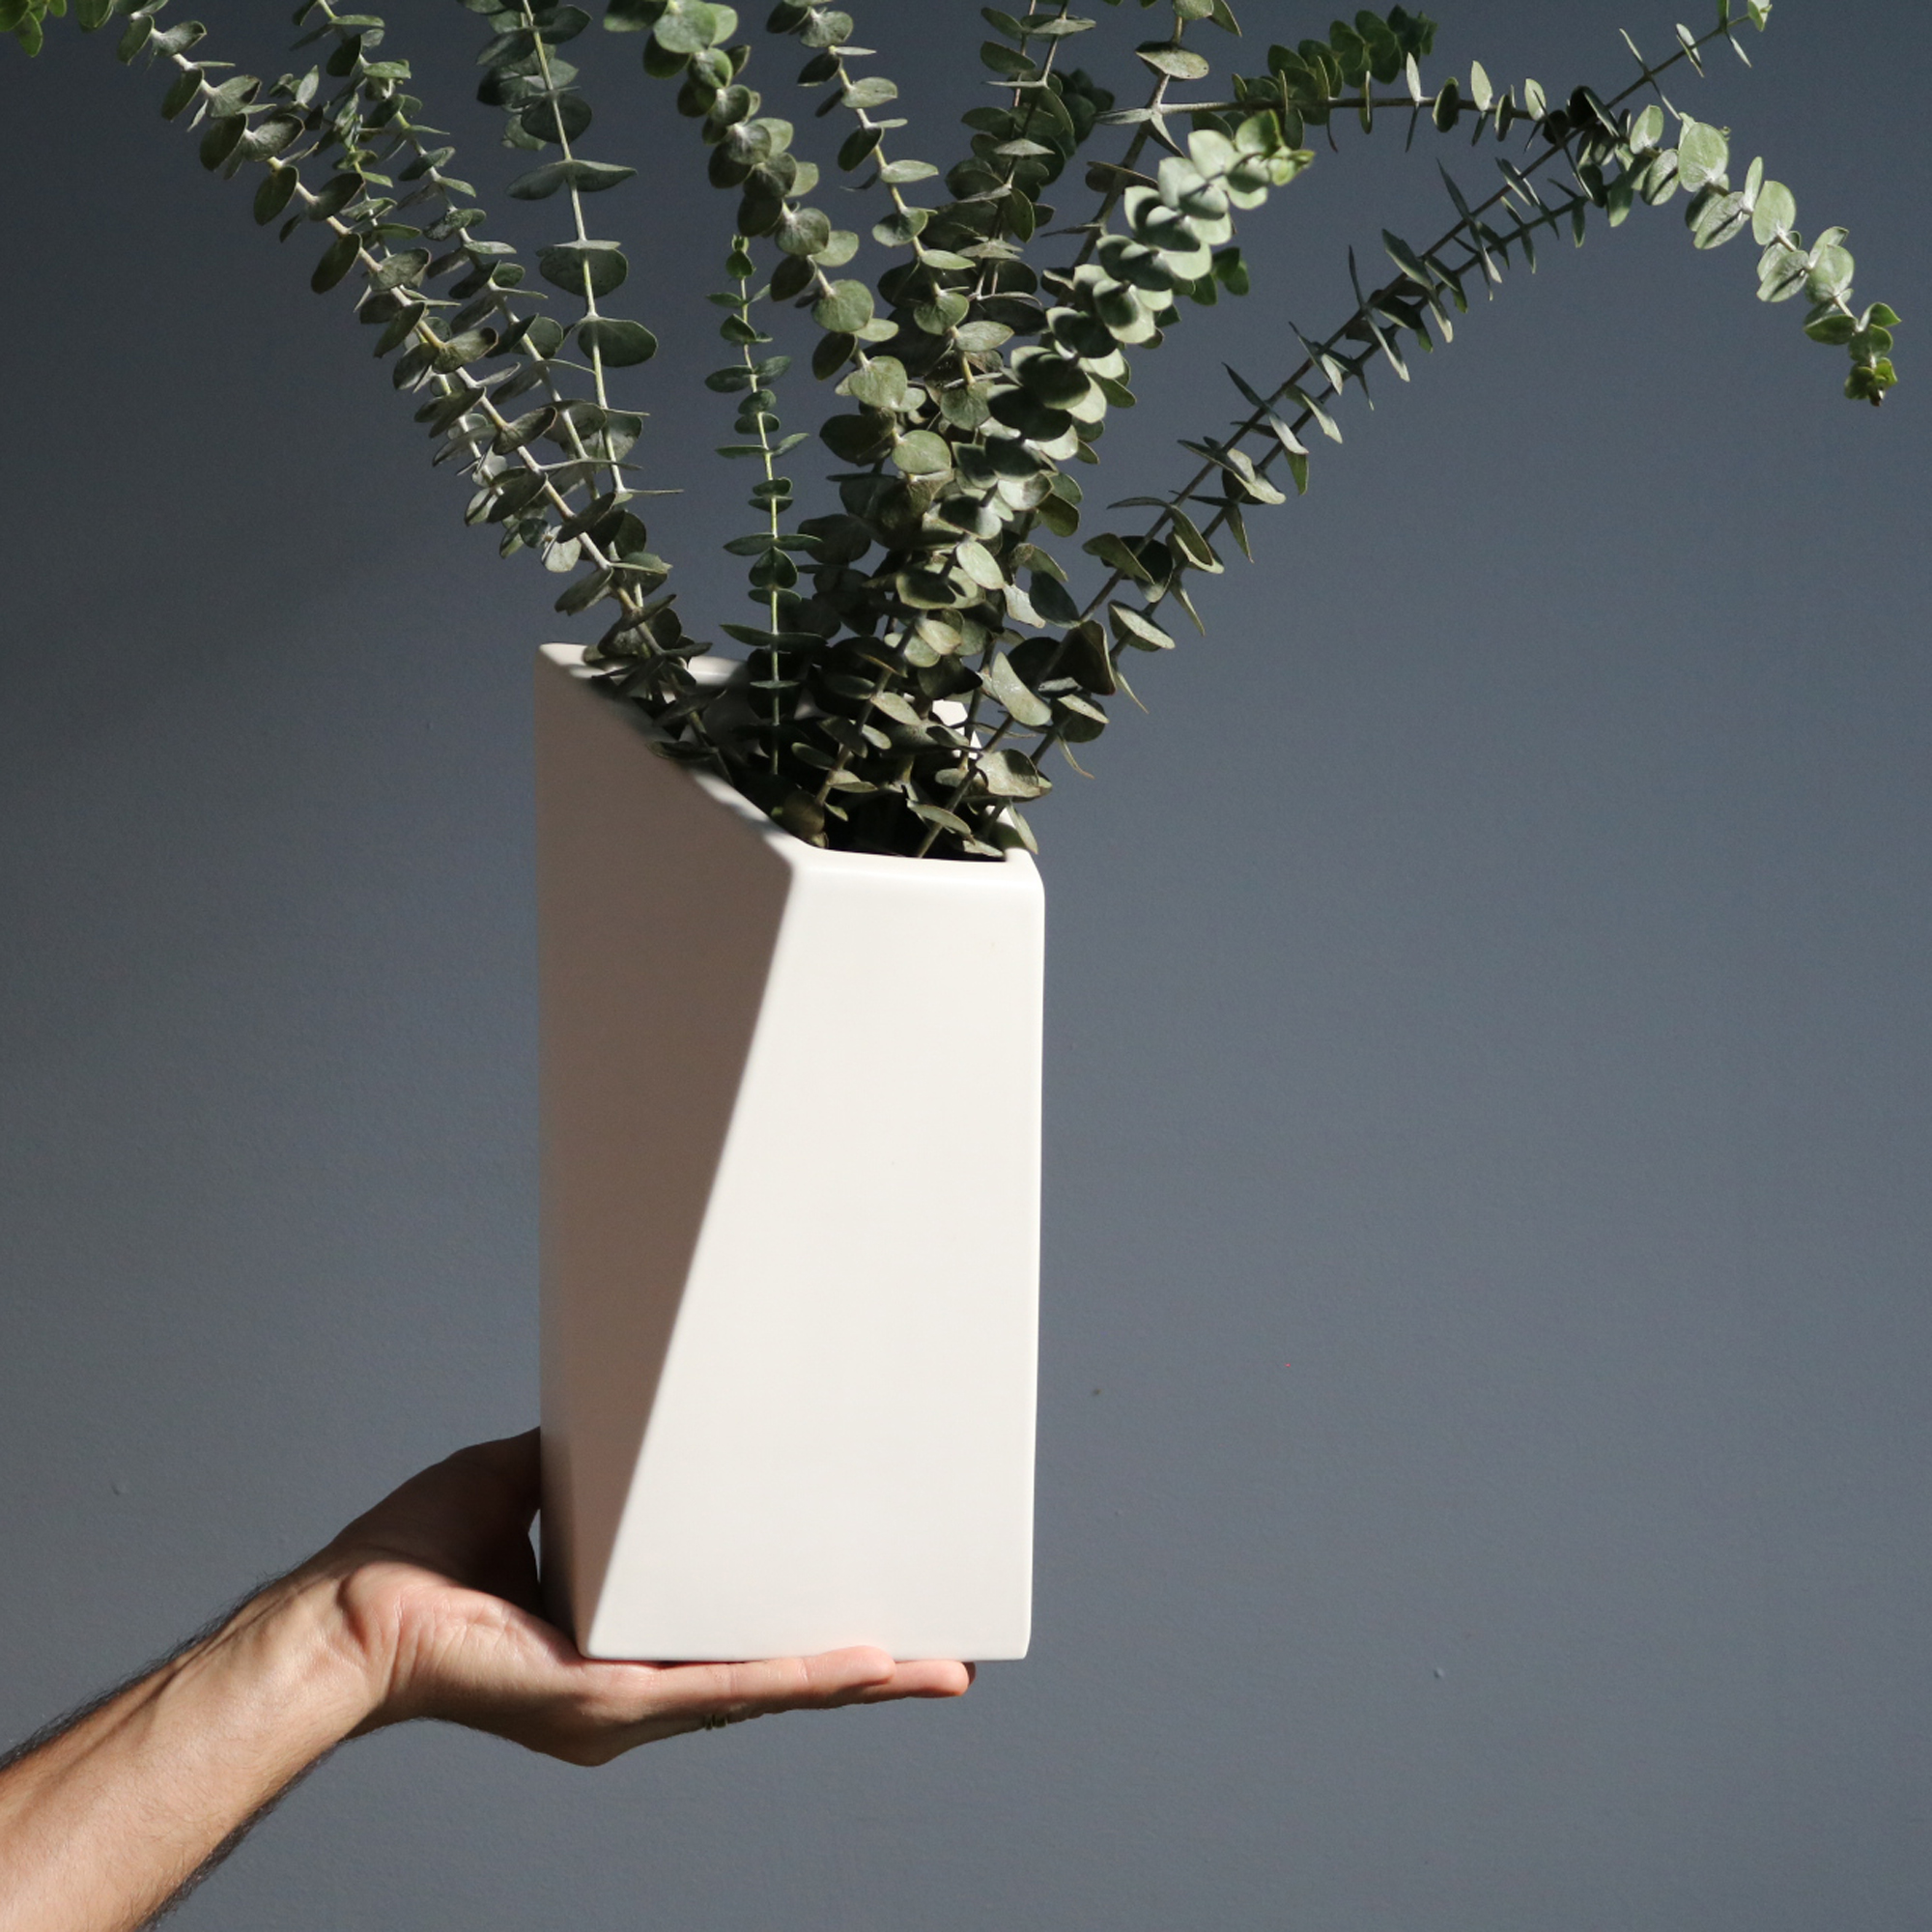 FOR THE PERFECT ASSISTANT :TRAPEZA PAUL VASE - Everyday they make your perfect arrangements - repay the favor with this gorgeous vase and a bouquet of something glamorous. Minimalist and geometric, the Trapeza Paul Vase is stylish, sophisticated, and versatile enough for any decor. A real lift for any room.Handcrafted by Cecile Mestelanin Lisbon's Campo de Ourique district.SHOP NOW >